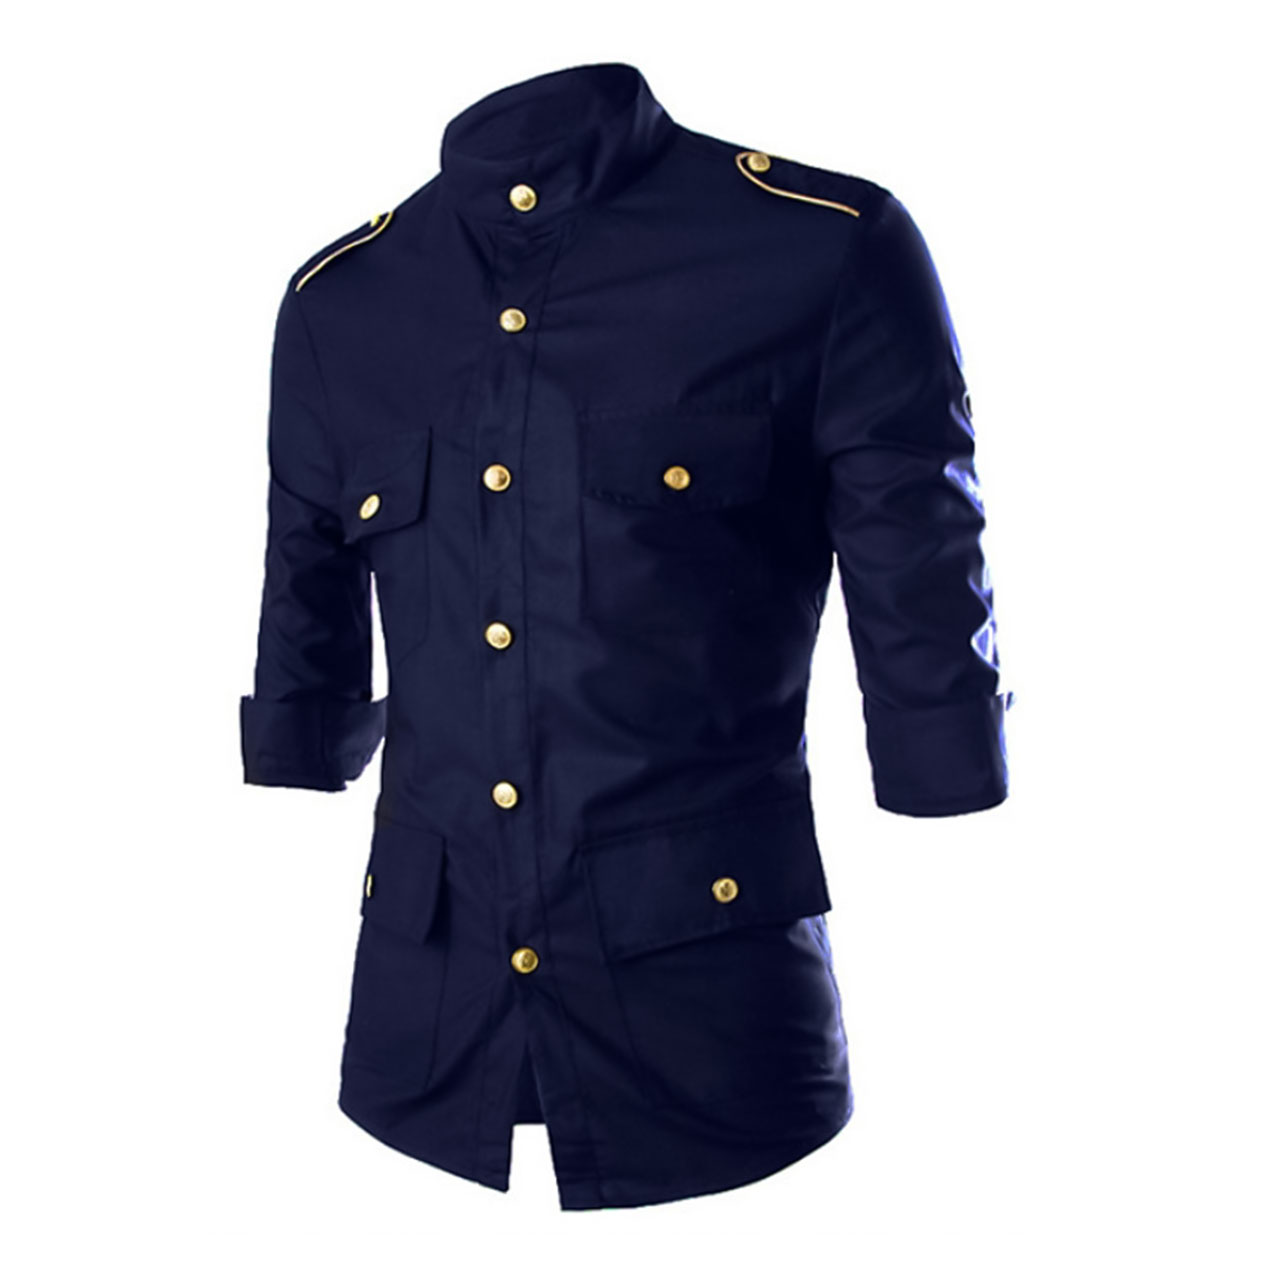 Men's Daily Military Cotton Shirt - Solid Colored Standing Collar Navy Blue